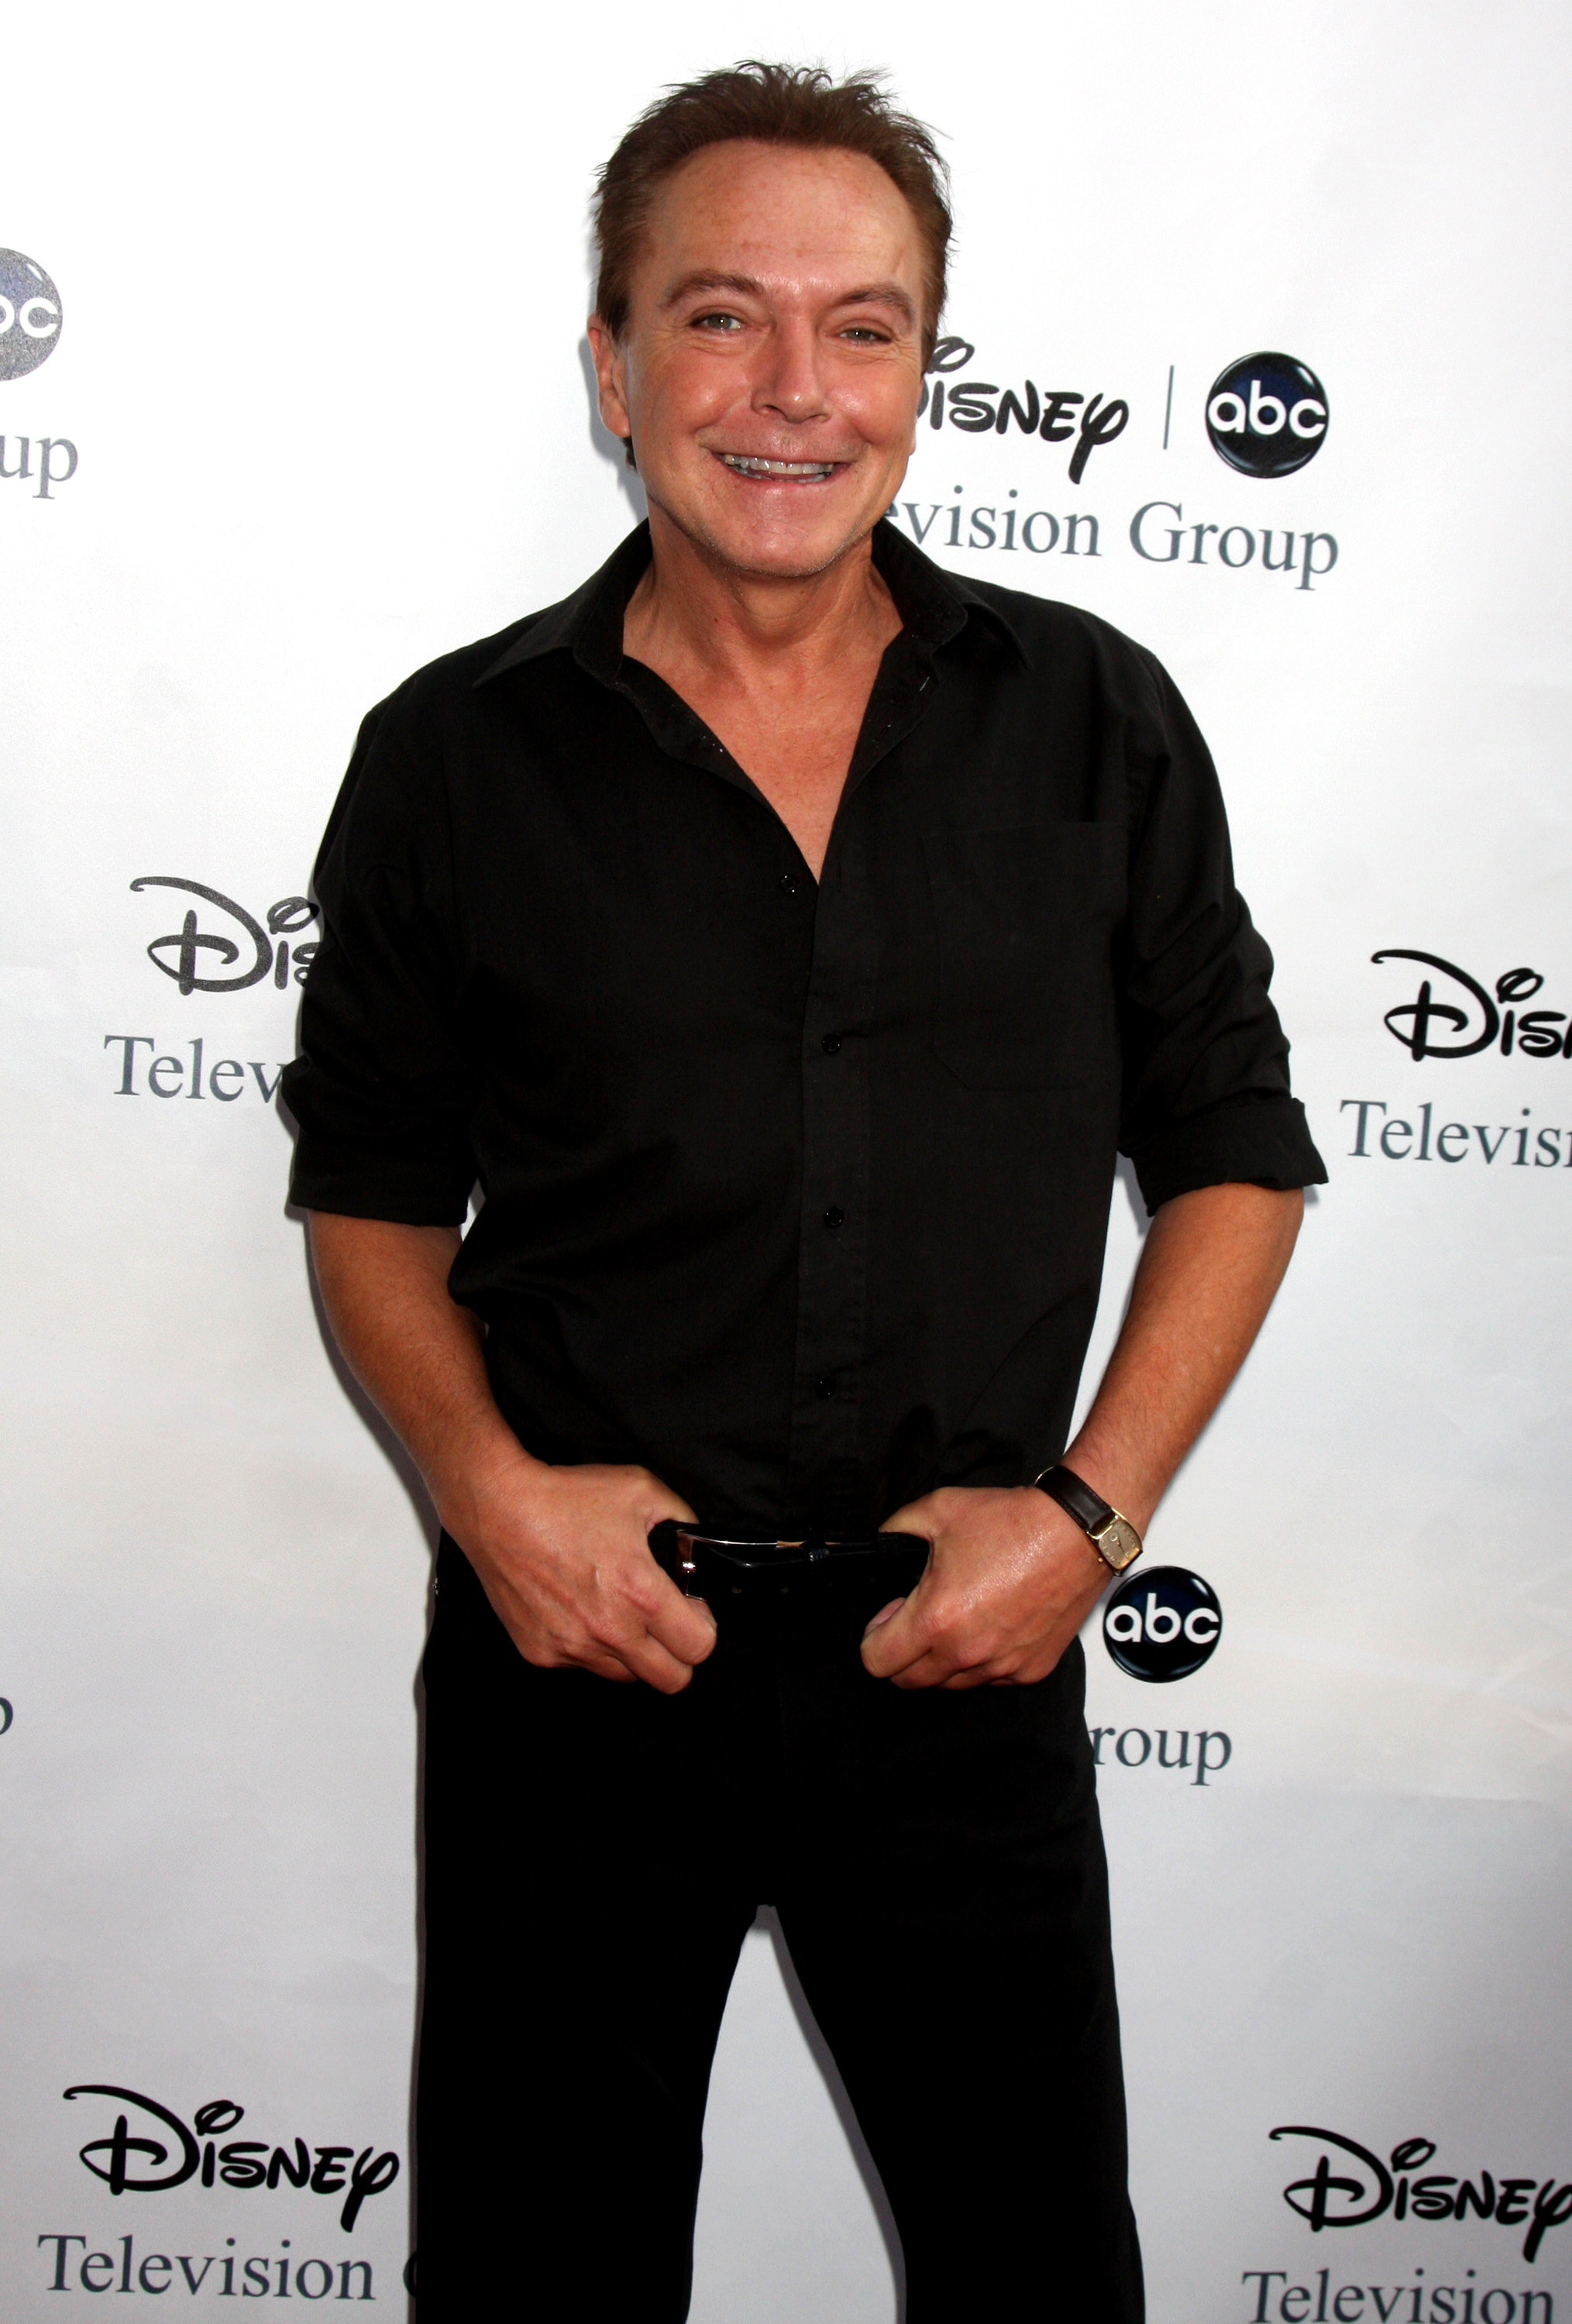 David Cassidy                  Disney's ABC Television Group summer press tour party - Arrivals                  Los Angeles, California - 08.08.09                                    Featuring: David Cassidy                  Where: United States                  When: 08 Aug 2009                  Credit: WENN